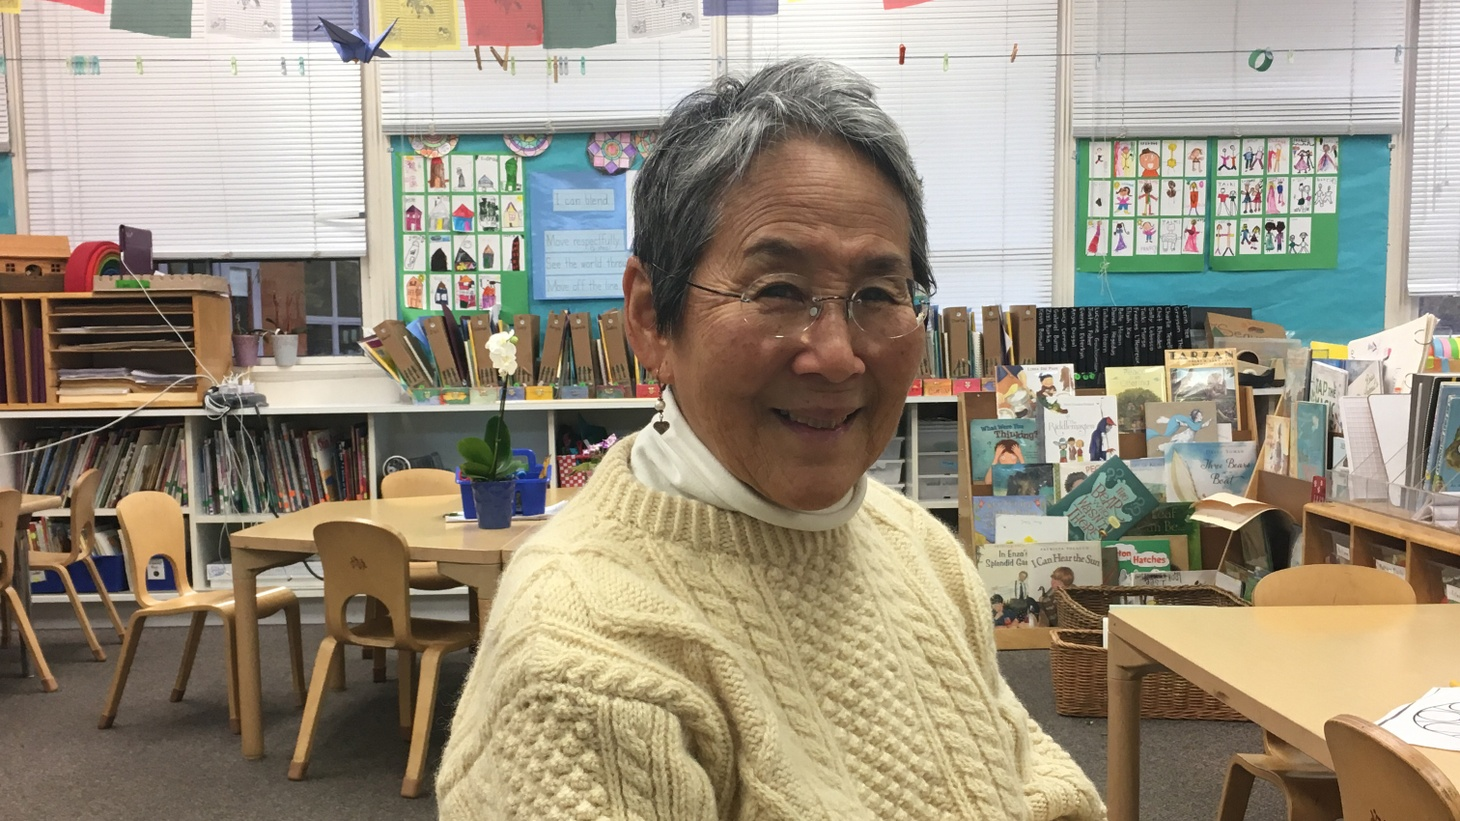 Mrs. Daijogo was an unforgettable kindergarten teacher – so unforgettable, that as an adult, Hannah went back to her old classroom, to watch her former teacher work. But watching her teacher with adult eyes, Hannah realized that Mrs. Daijogo was teaching her students more than how to read and write.